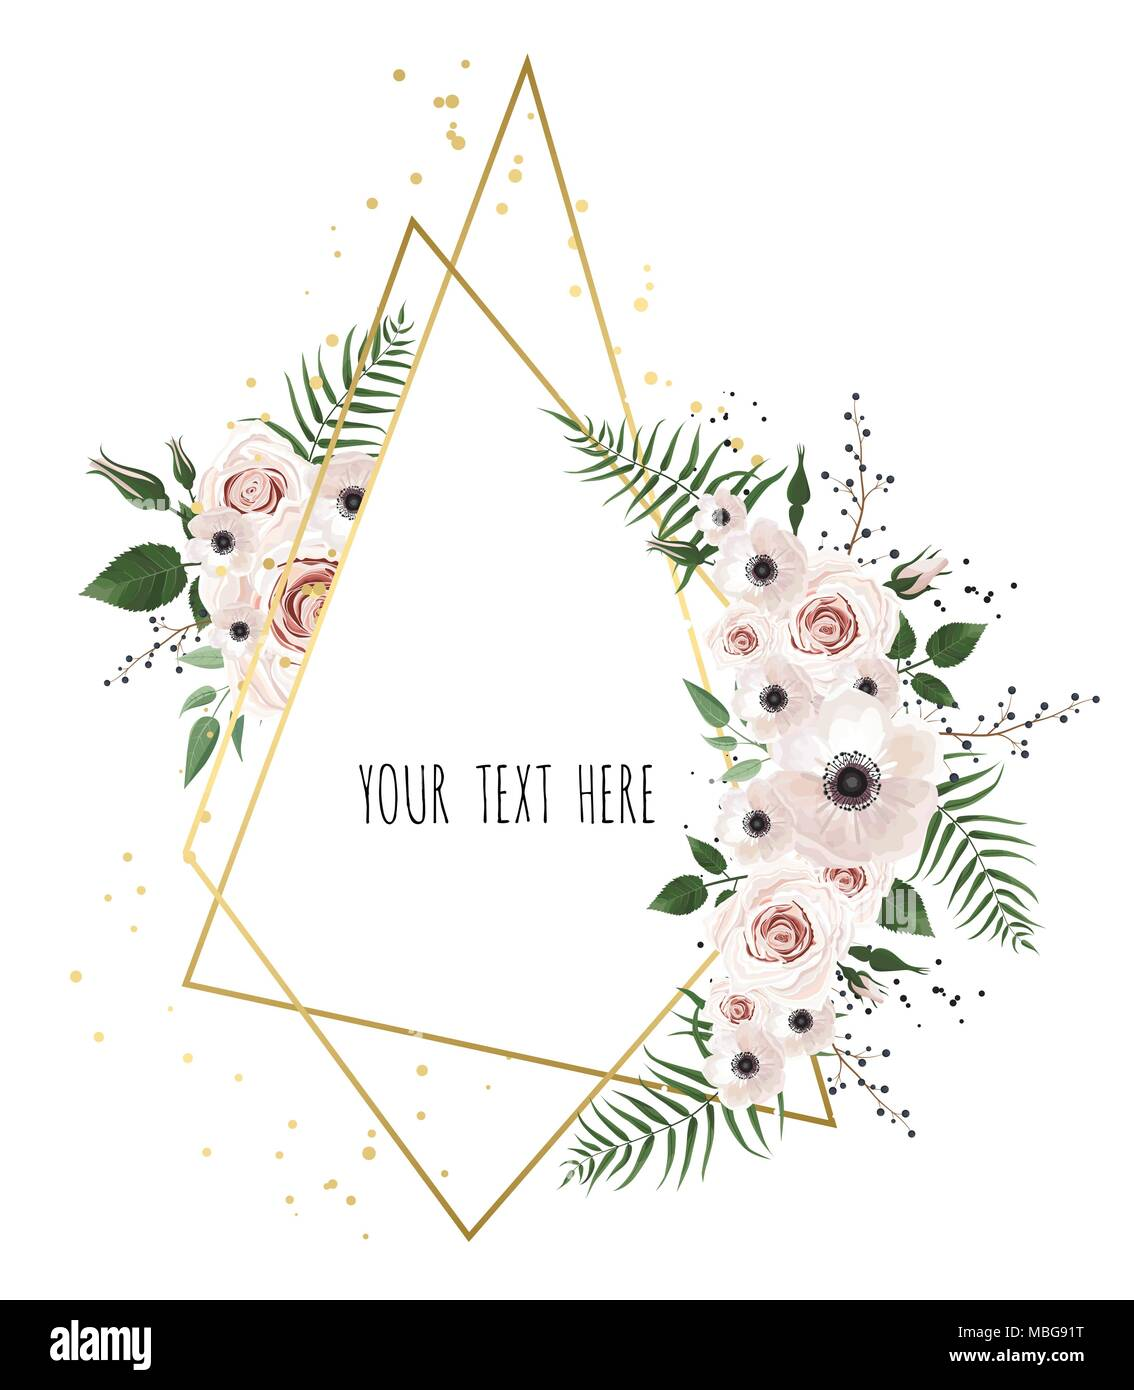 Vector floral design card. Greeting, postcard wedding invite